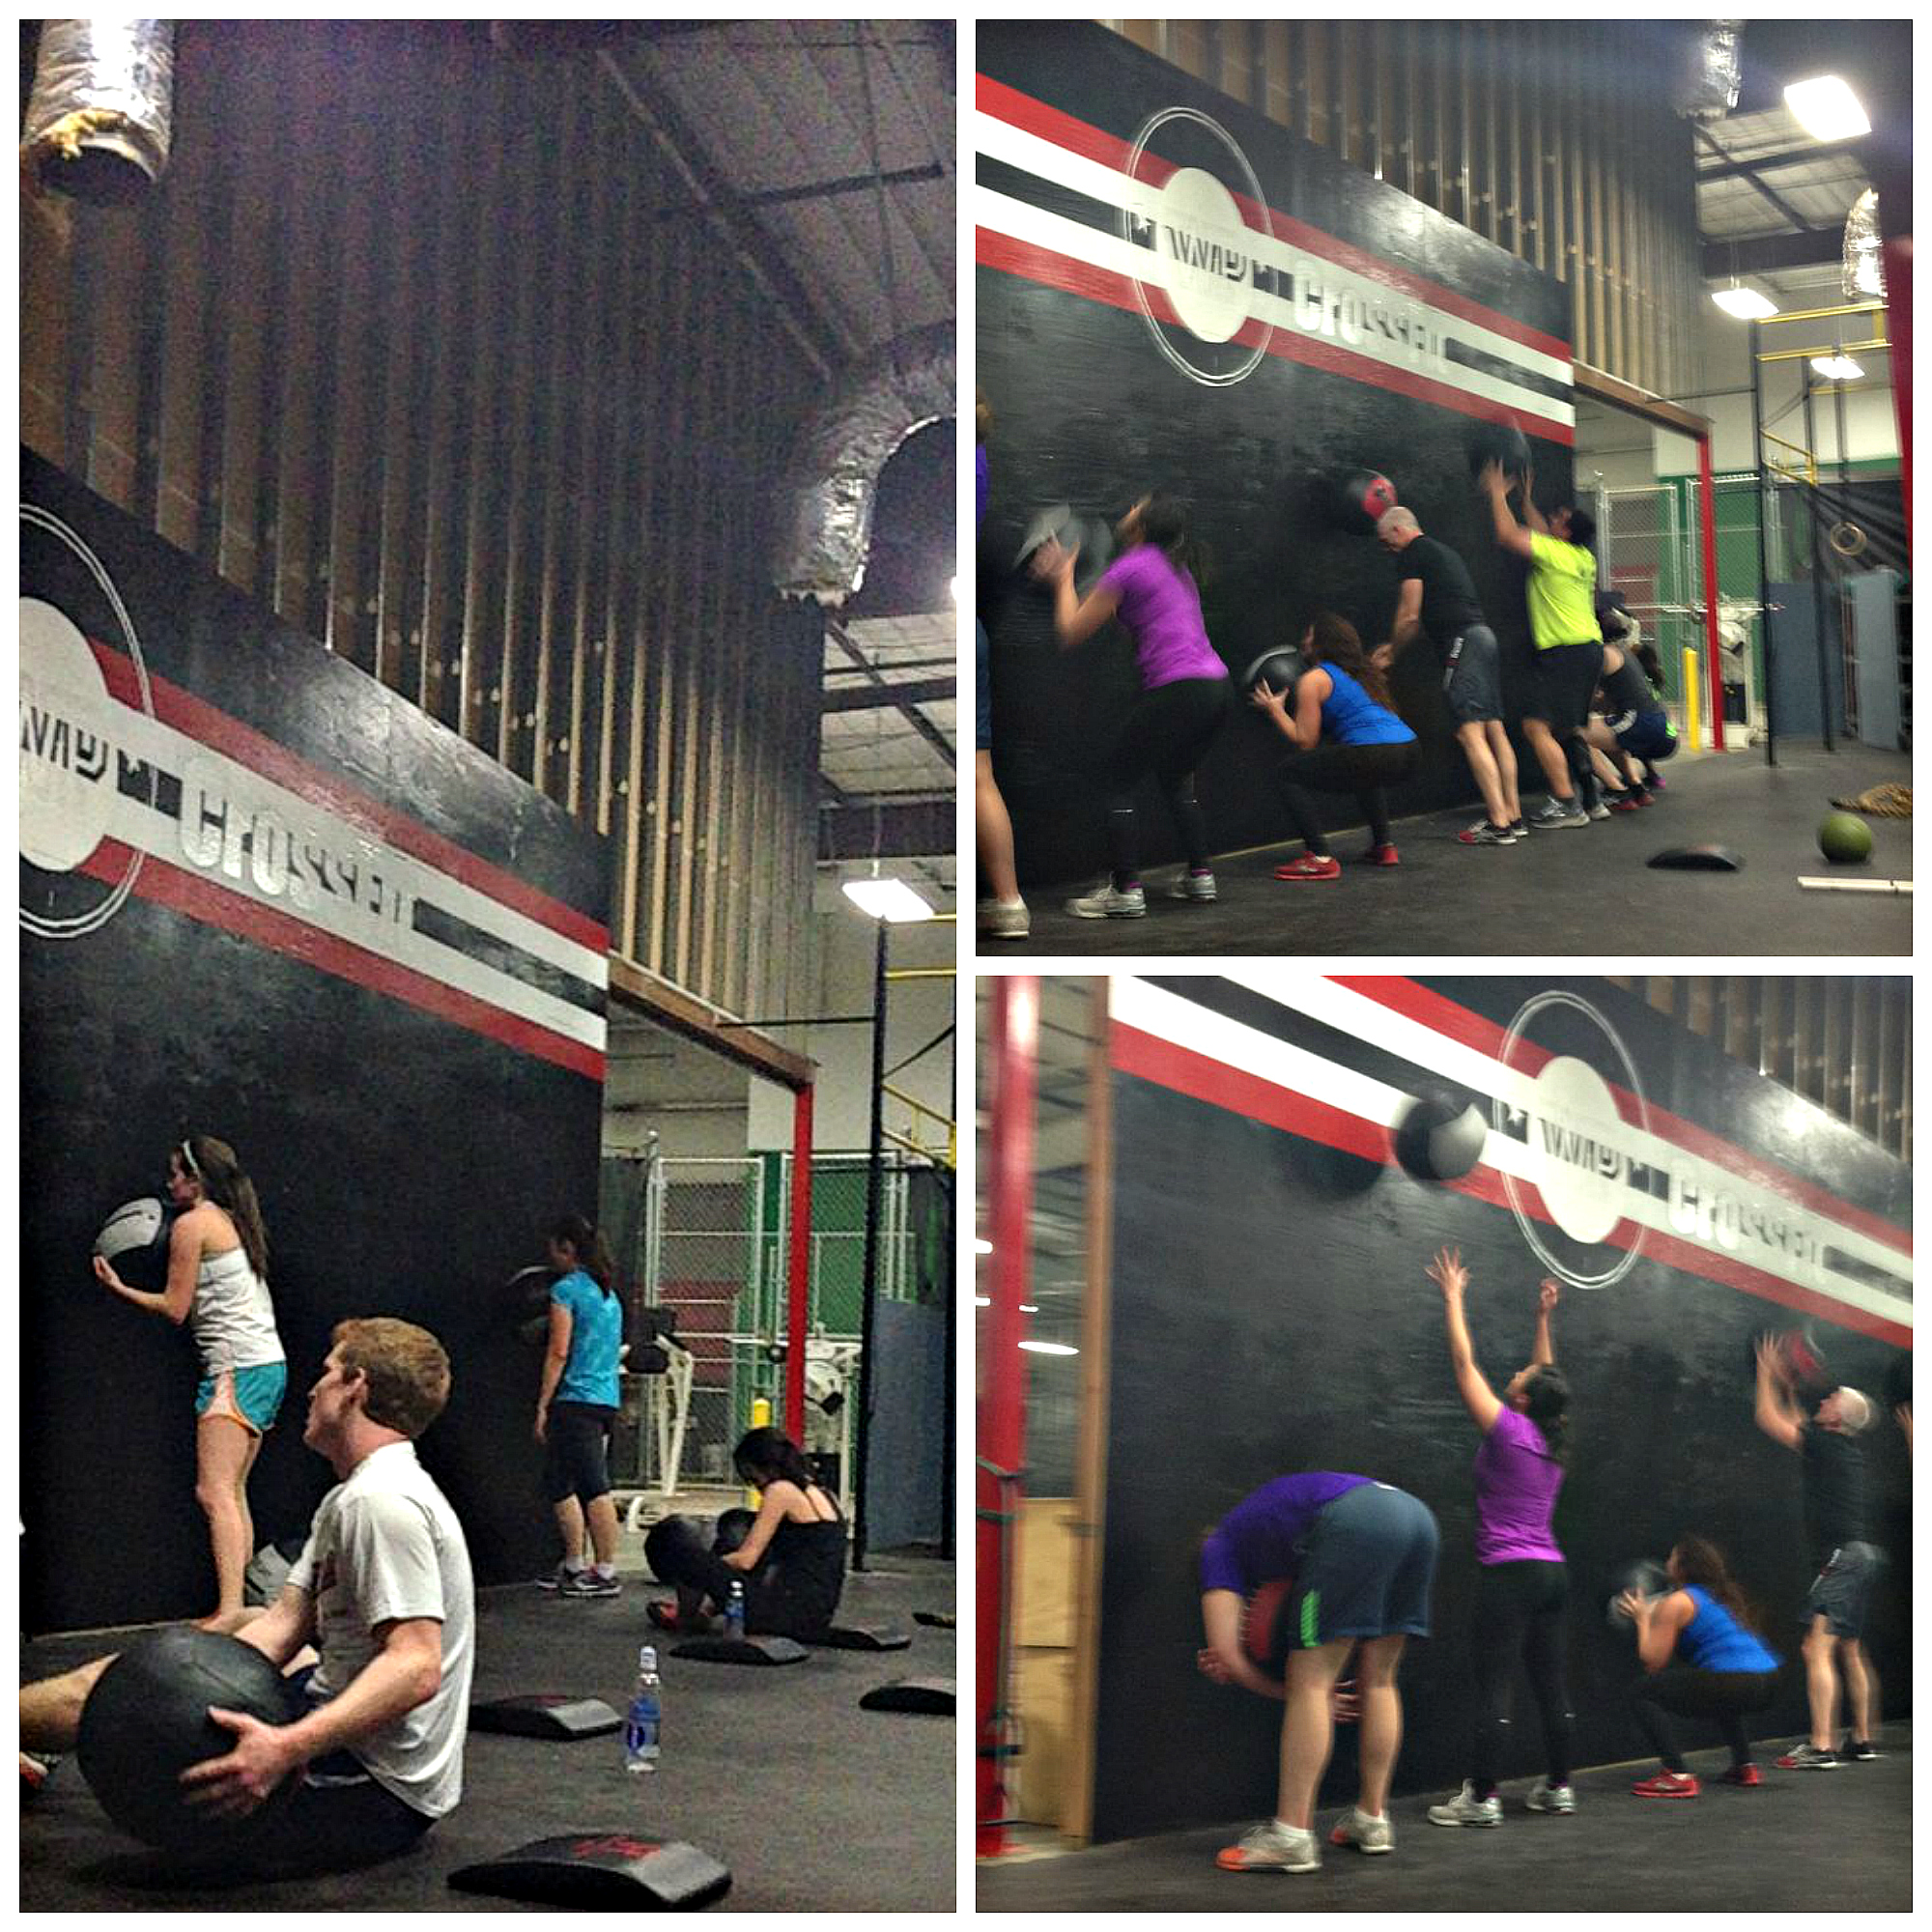 Remember the wall ball WOD with the burpee penalty? Here you all are with  awesomely  creative ways to keep the ball from touching the ground! Good news... this Games Open 11.5 WOD does not have this penalty!  :)